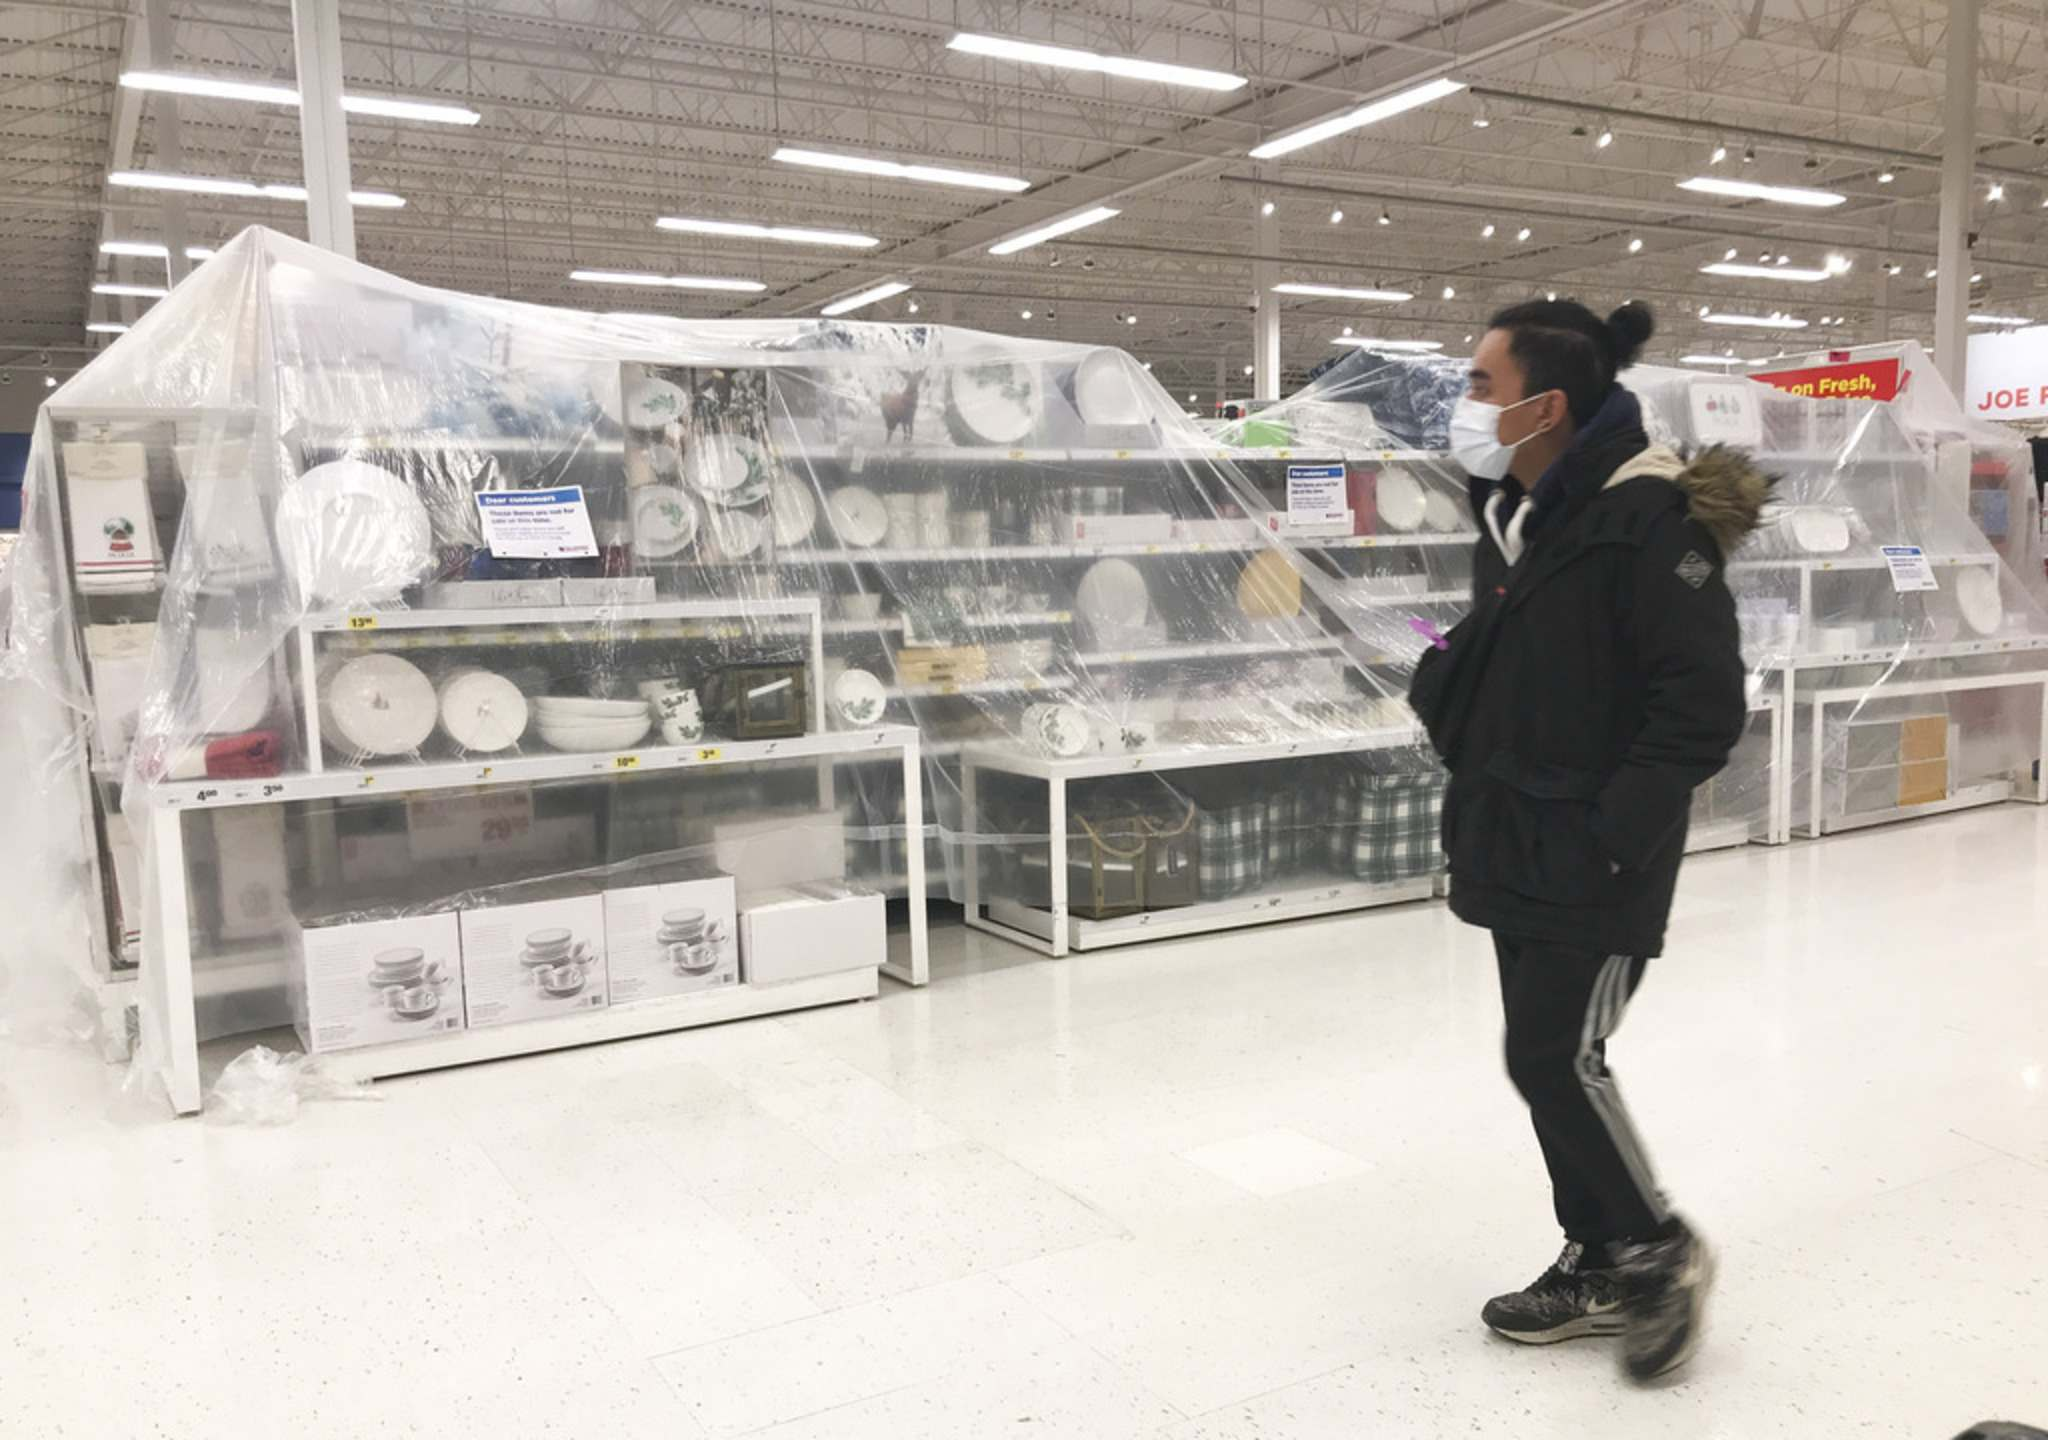 MIKE DEAL / WINNIPEG FREE PRESS</p><p>Superstore on Sargent Avenue had done a very thorough job blocking access to non-essential goods as of Friday afternoon.</p>